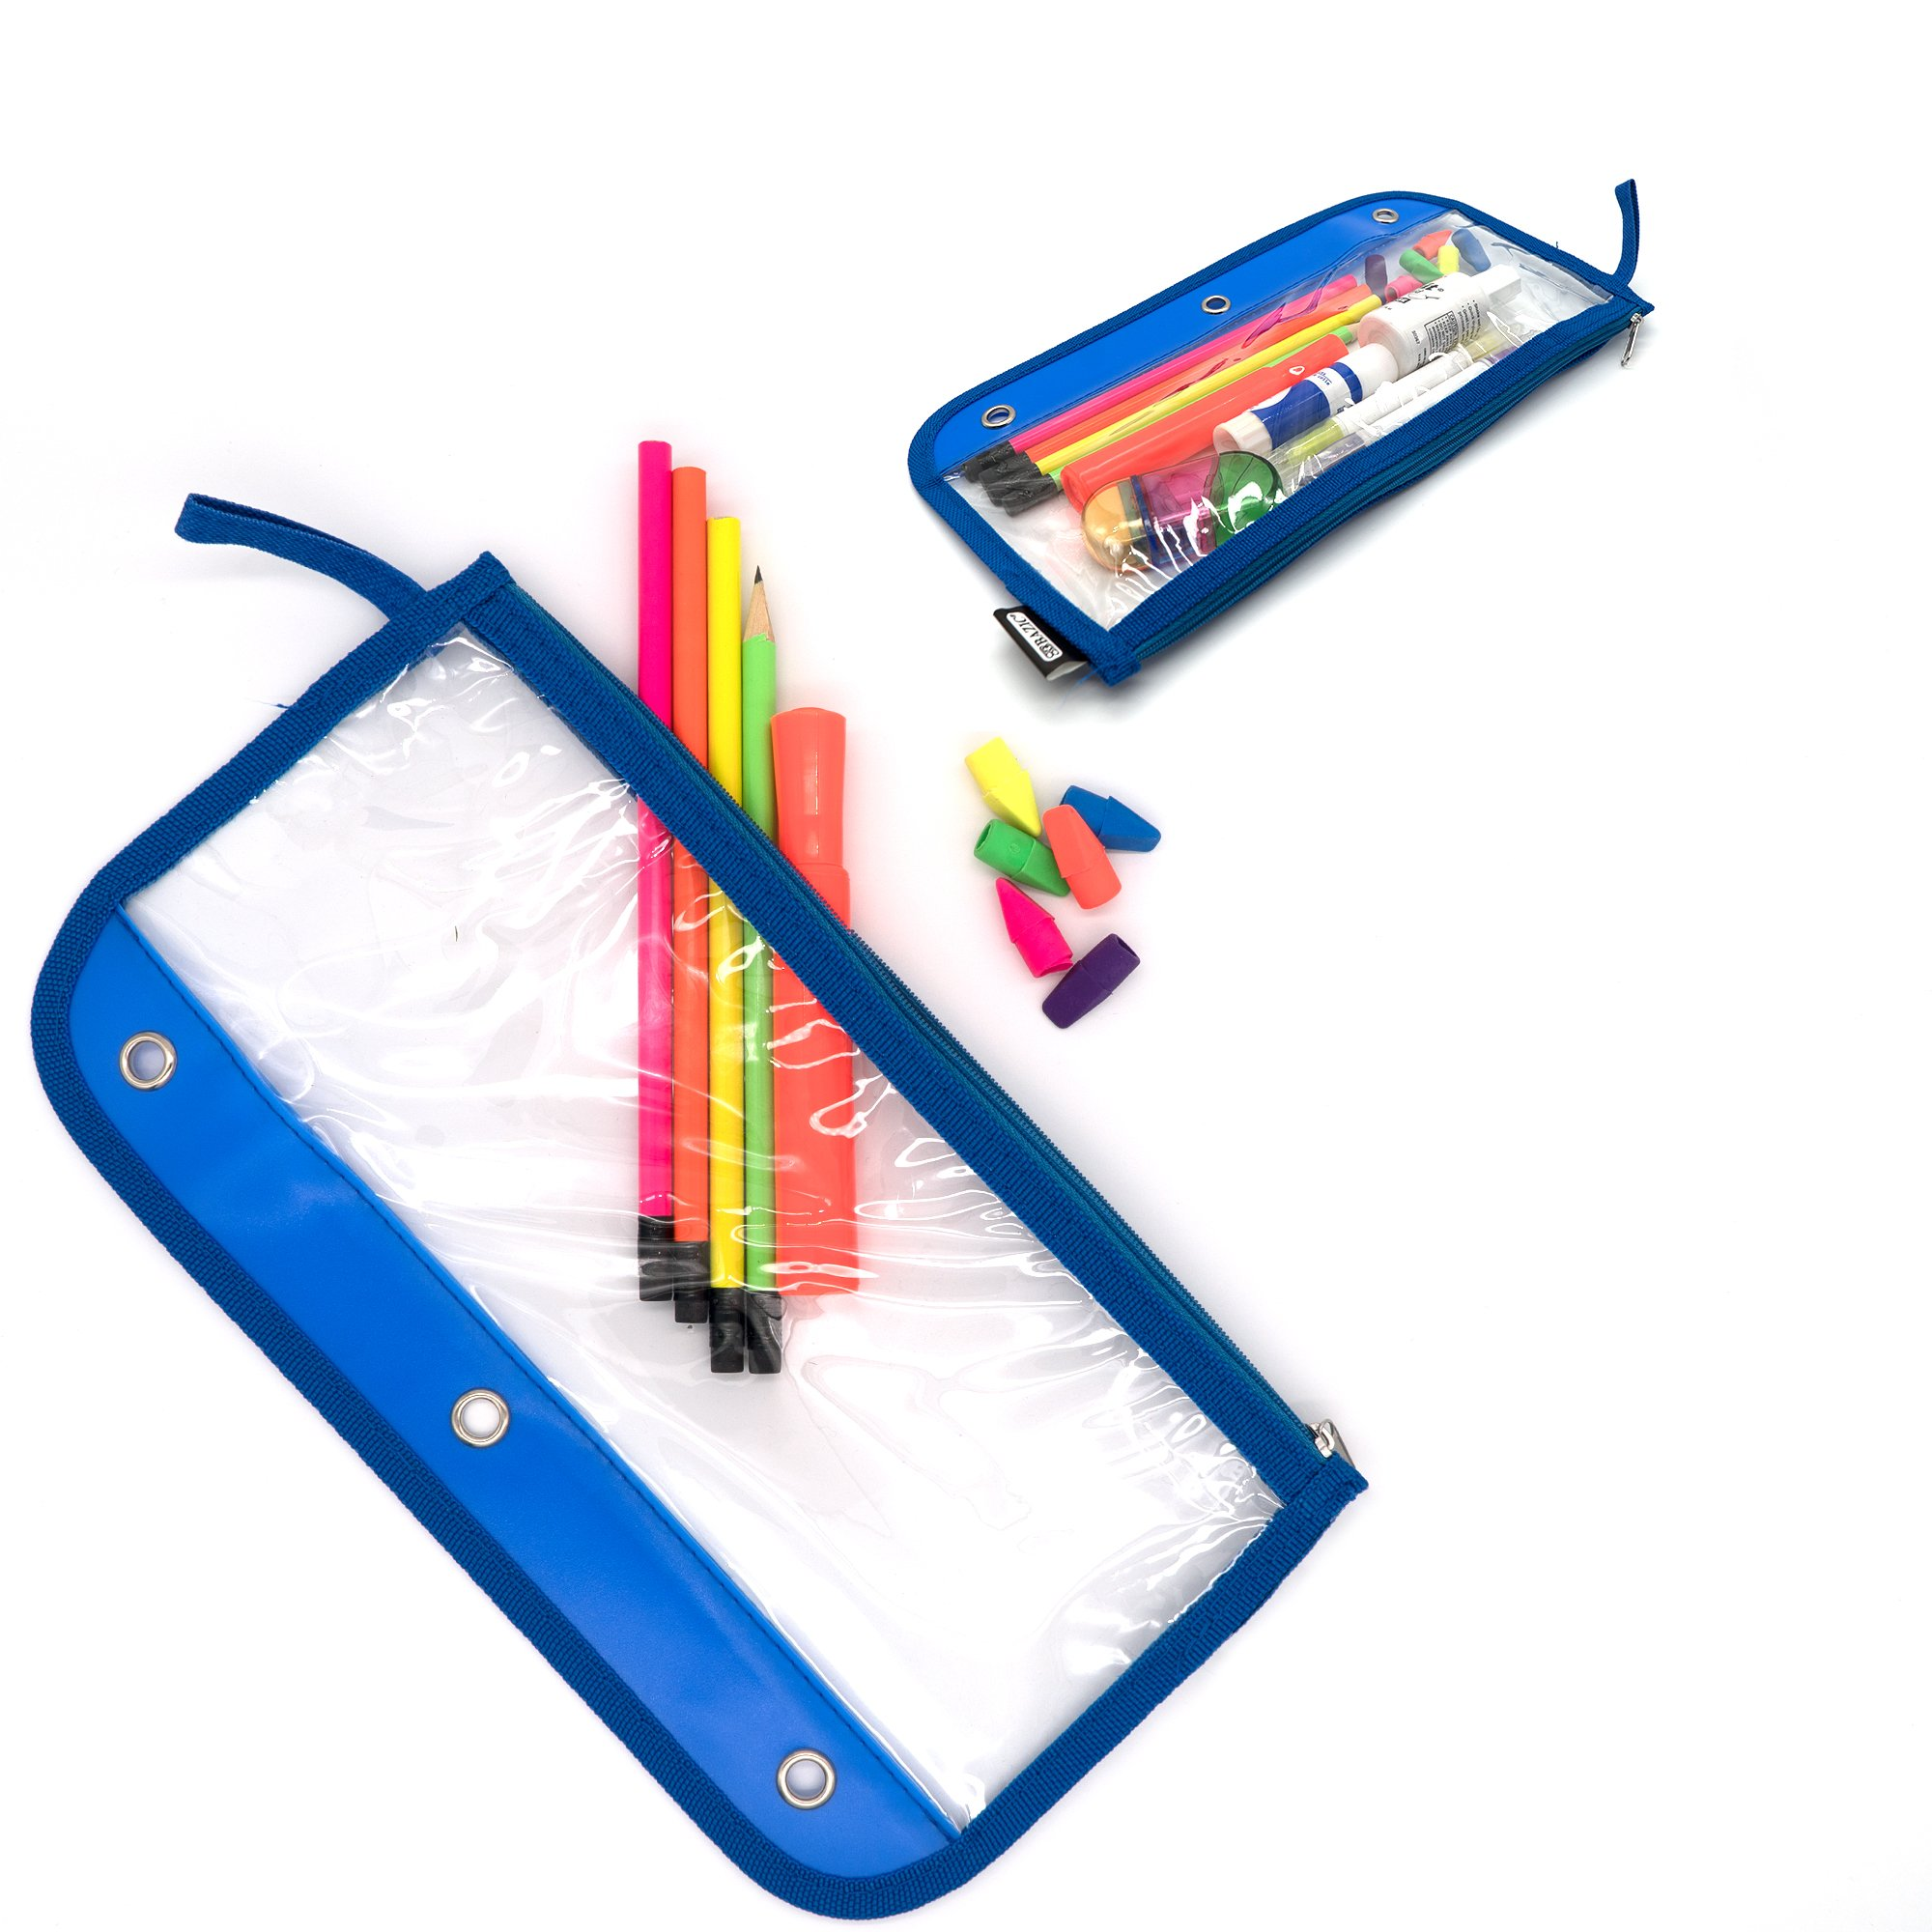 Emraw Zipper Pencil Pouch with 3-Ring Grommet Holes - Pencil case with Clear Window for Binder & Zipper Pouch (6-Pack) by Emraw (Image #4)